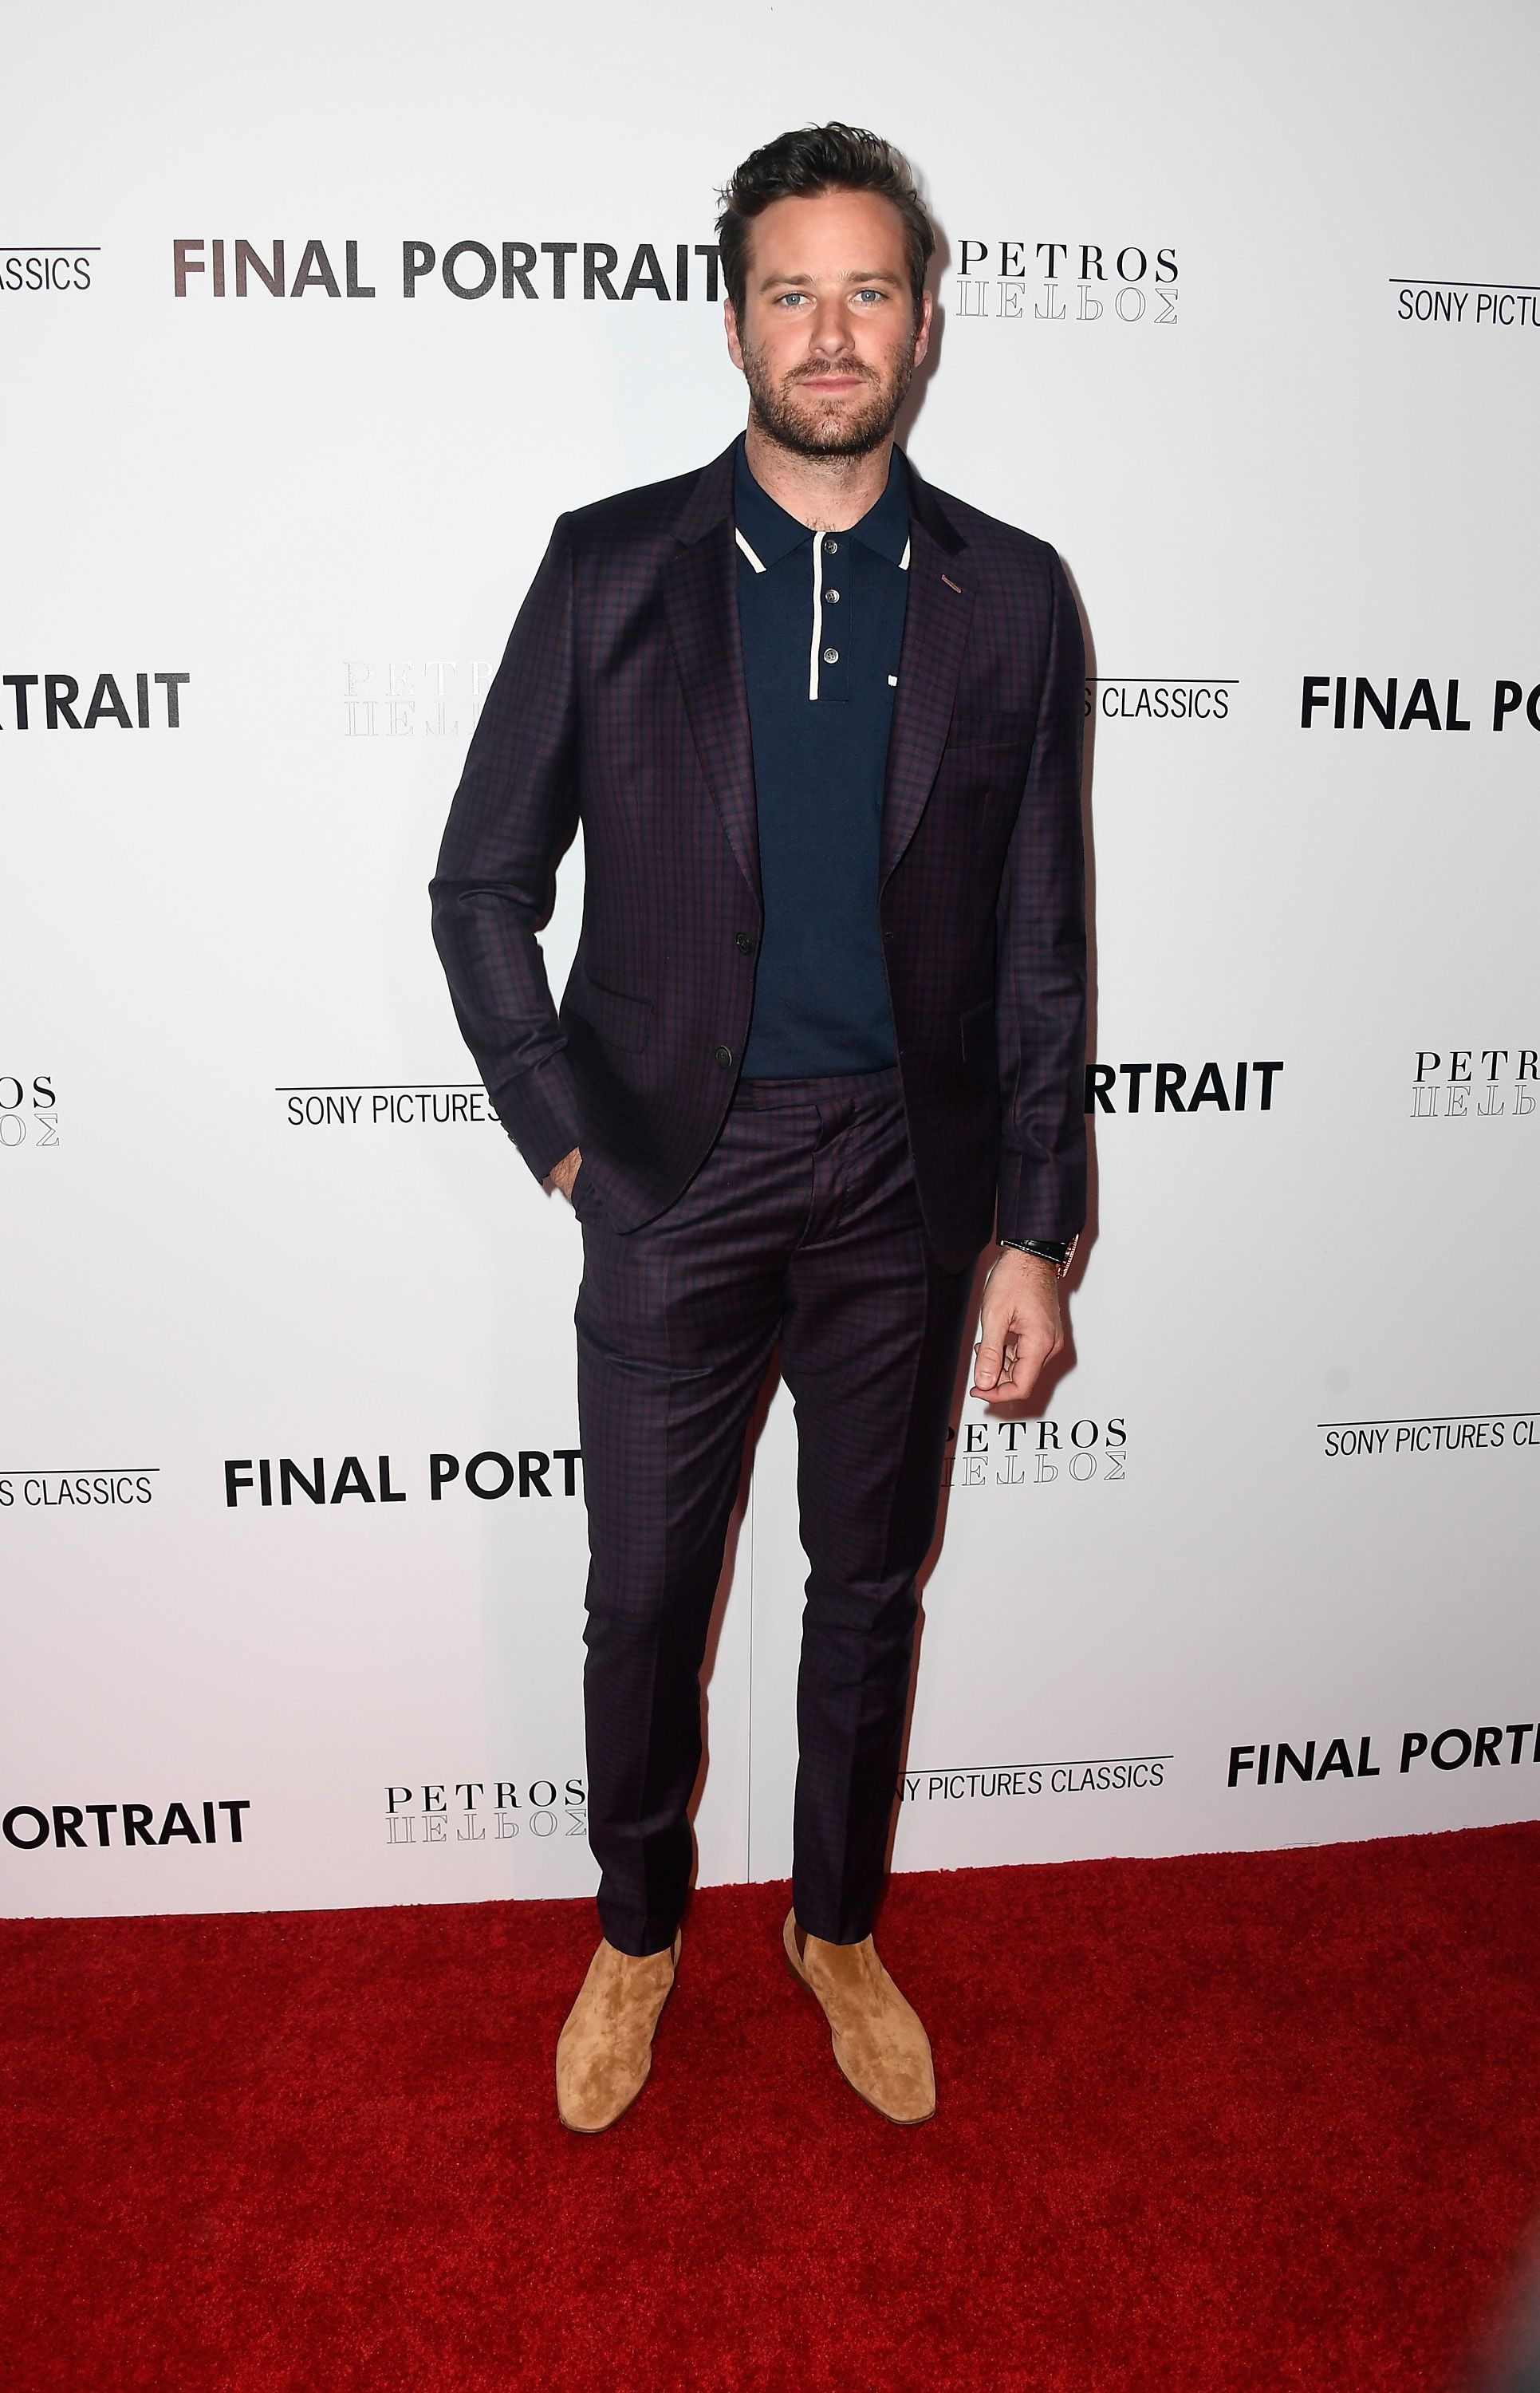 Armie Hammer When you need a suit but can skip the tie, opt for a clean-cut polo rather than a dress shirt. Lose the jacket after your big meeting.